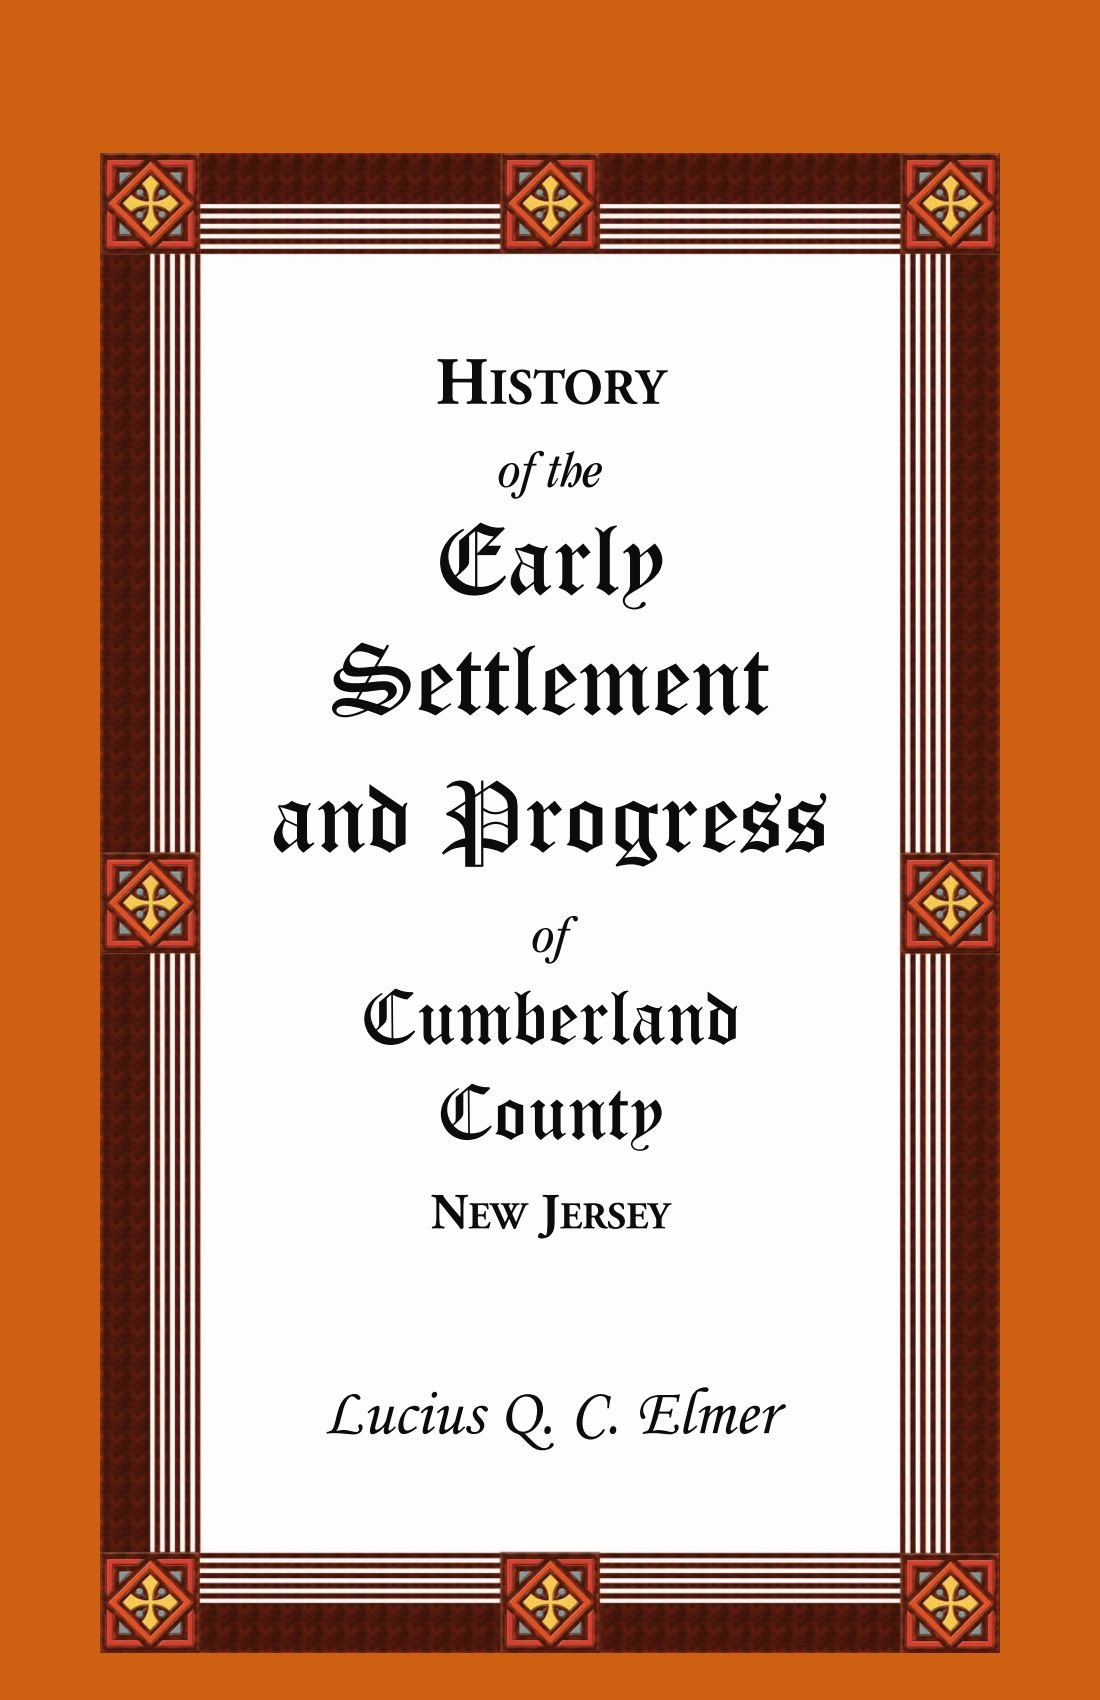 History of the Early Settlement and Progress of Cumberland